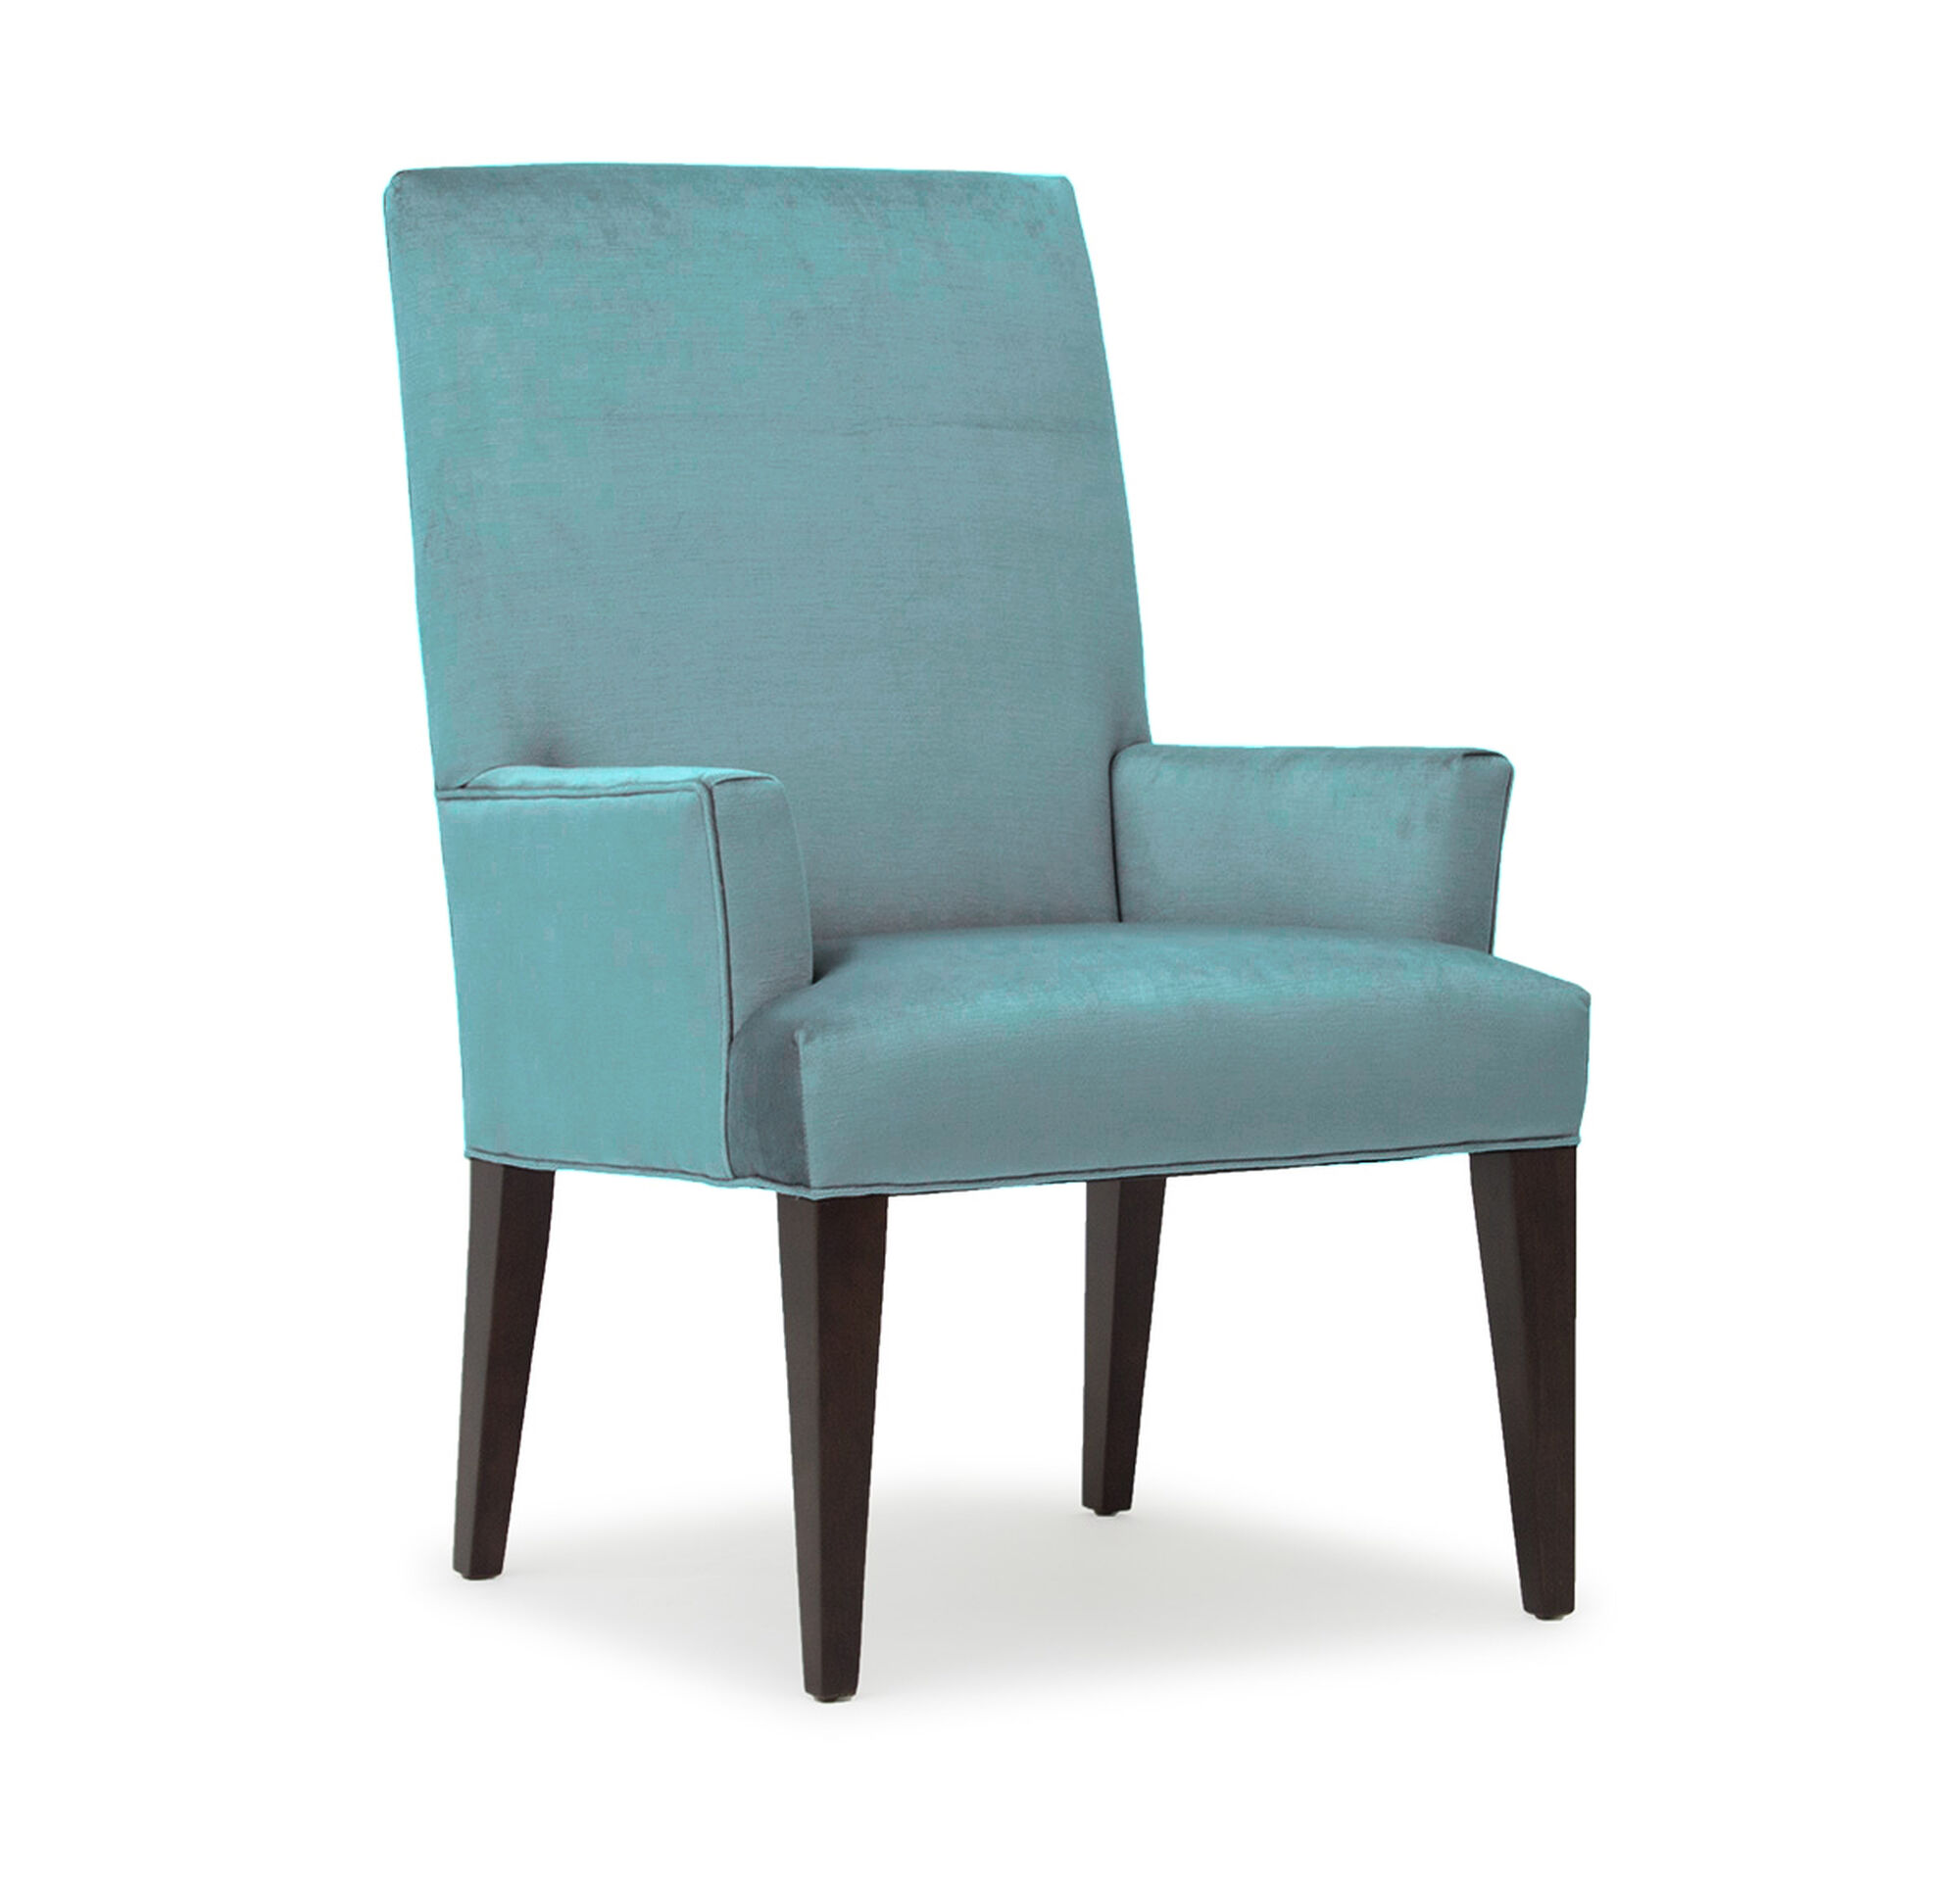 dining room chairs with arms for sale. anthony tall arm dining chair, , hi-res dining room chairs with arms for sale e